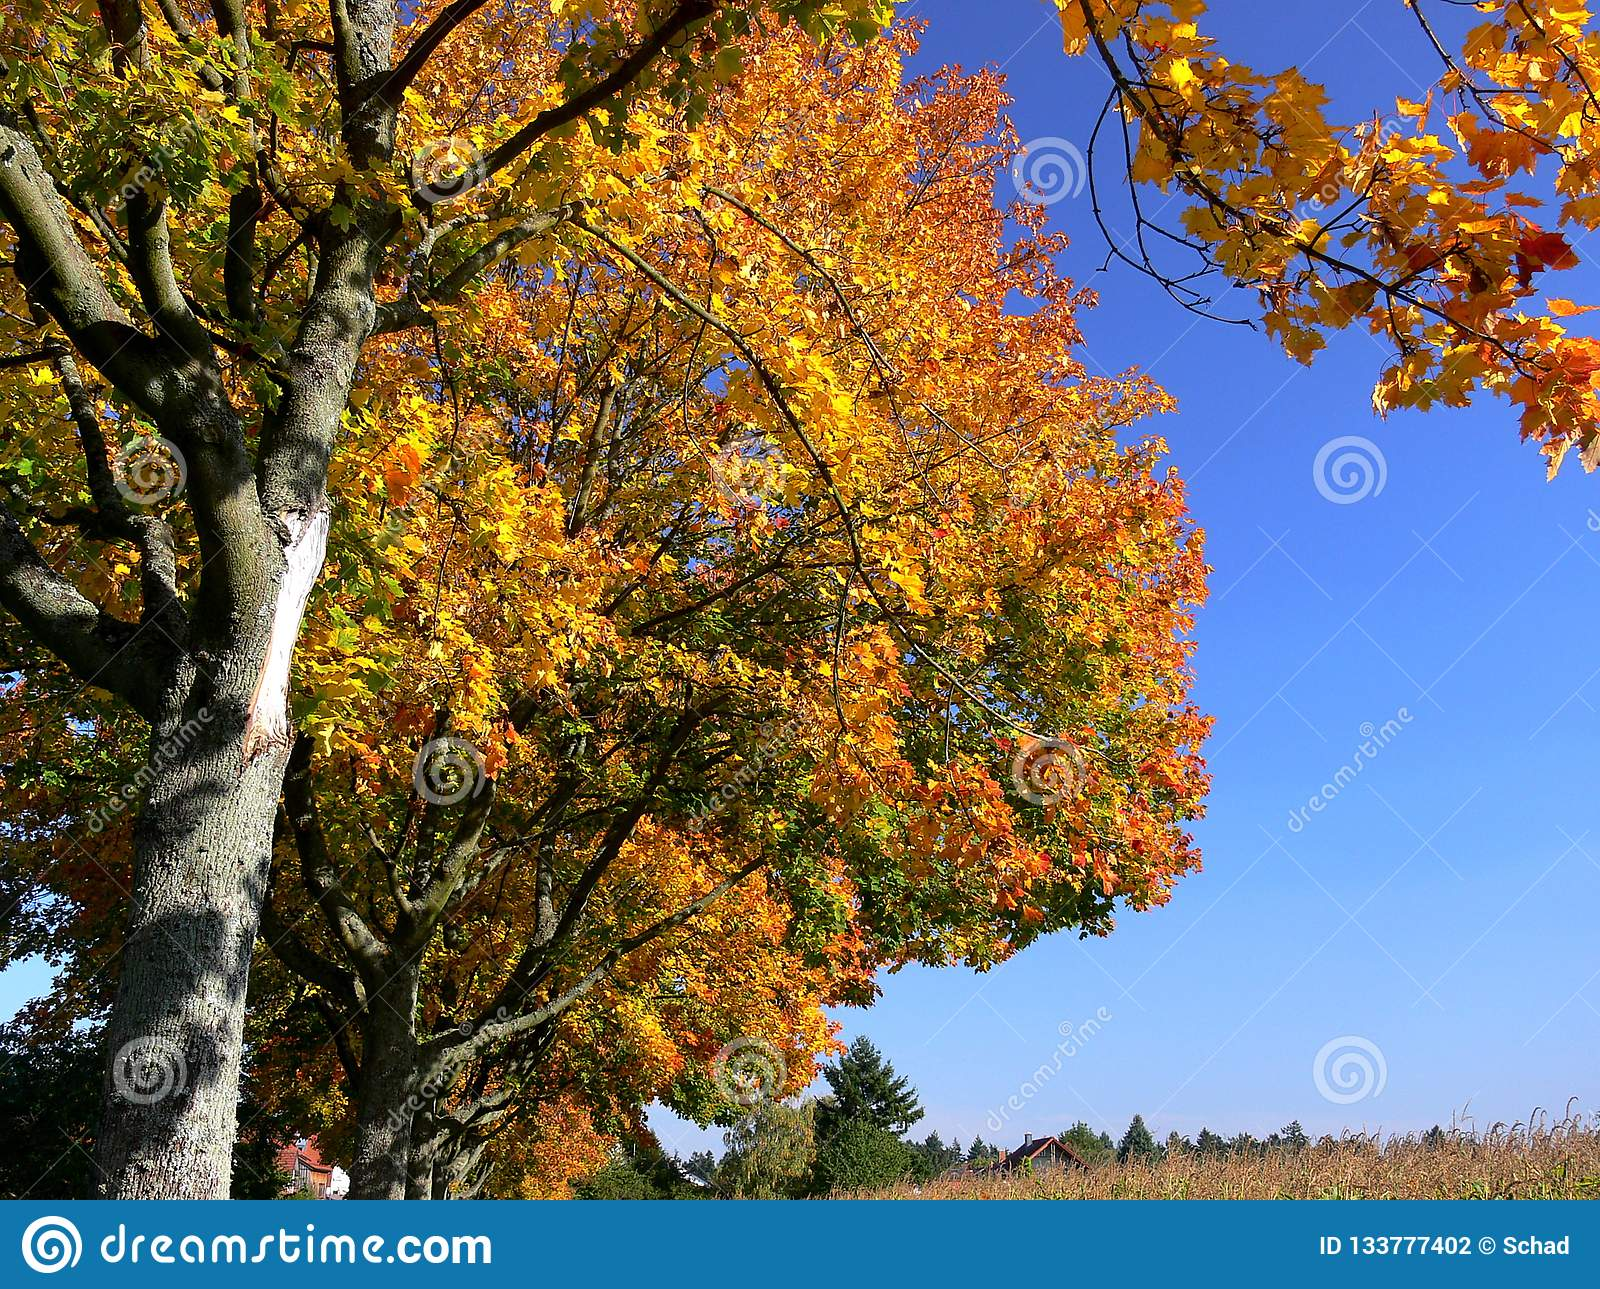 Avenue with trees in great fall colors and blue sky